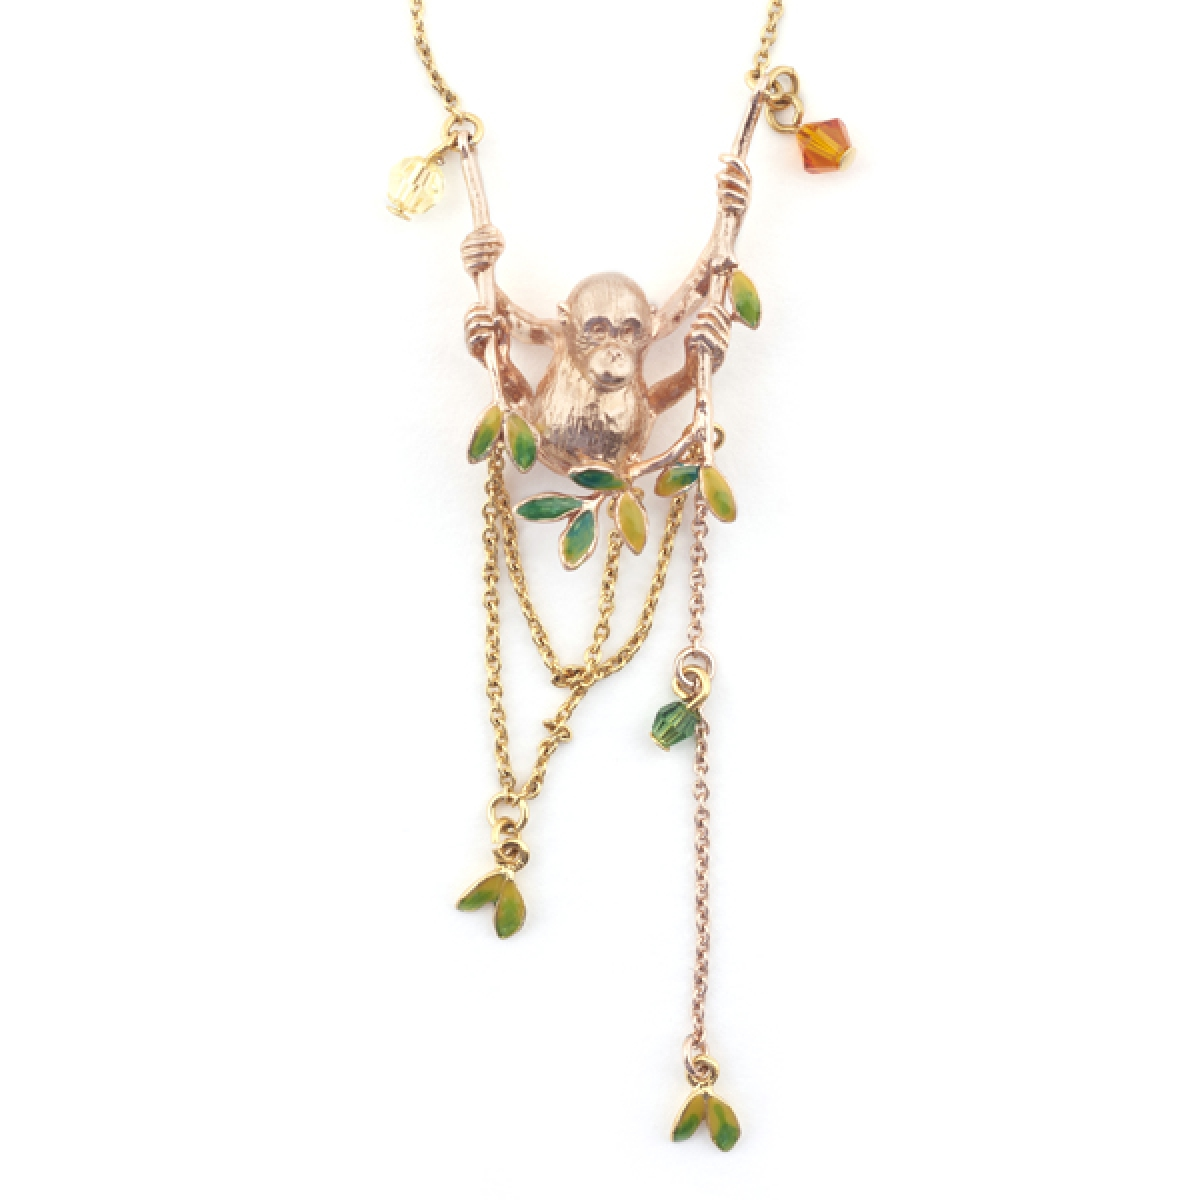 Orangutan Swing Necklace